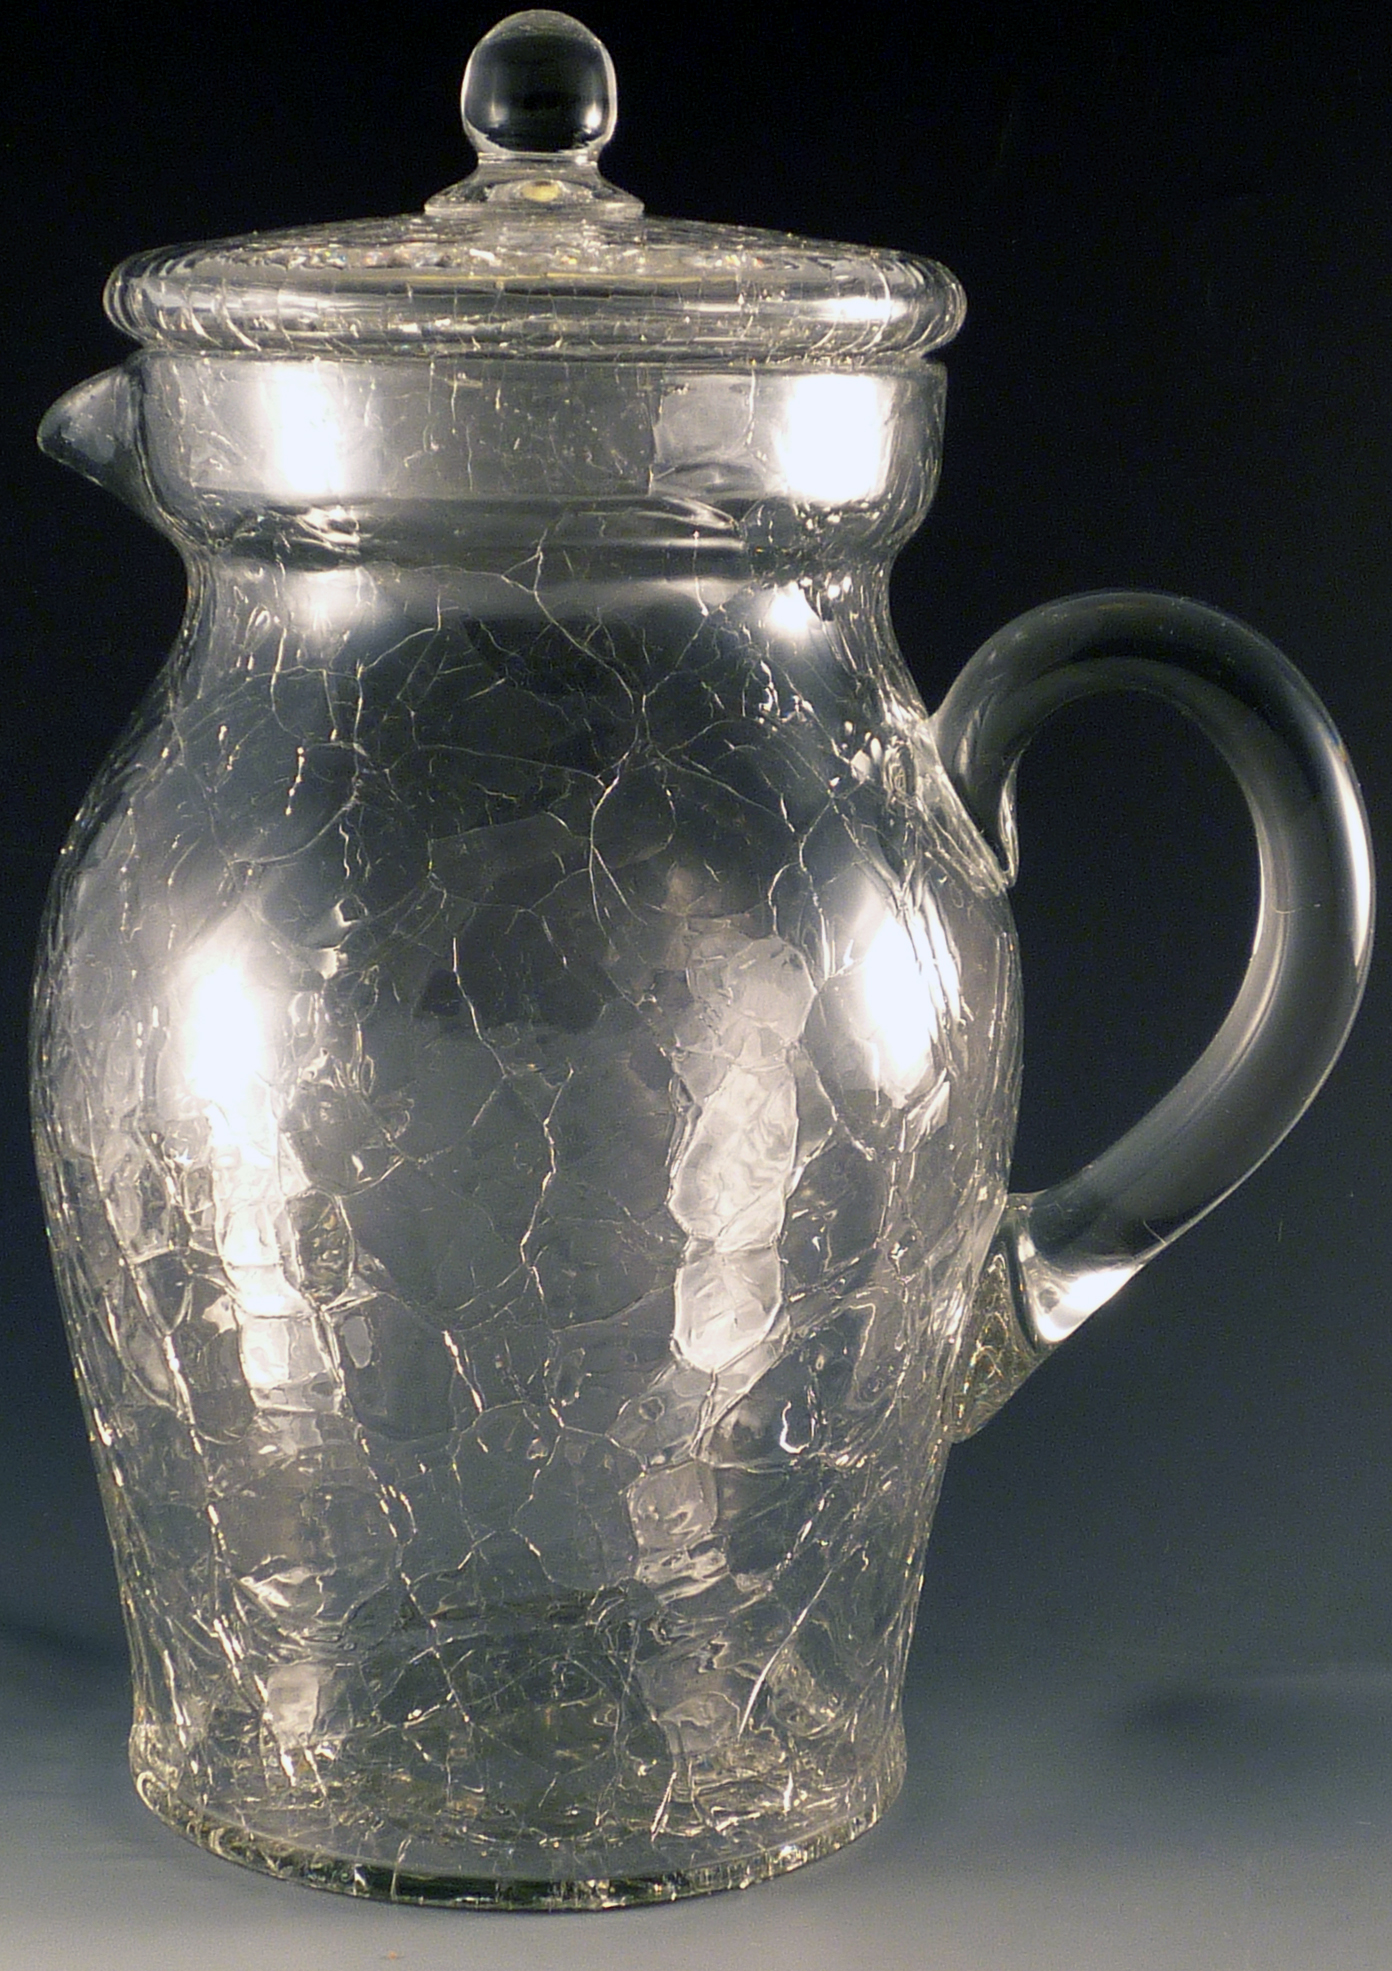 Small Glass Pitcher With Lid Tip Of The Week Check Pitchers For Cracks And Damage